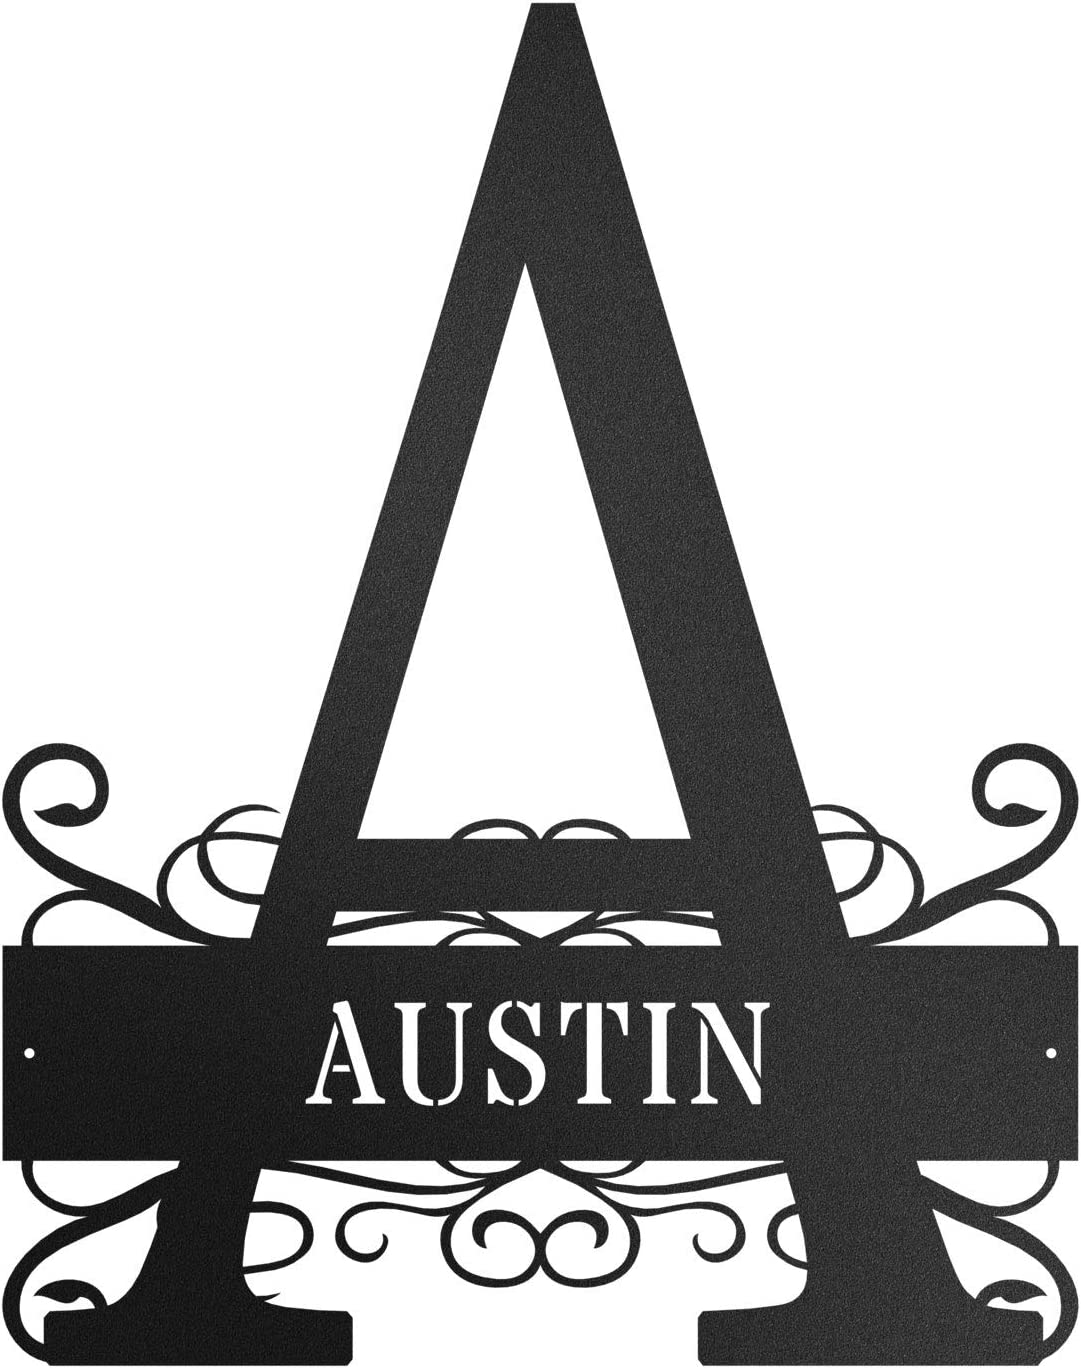 Redline Steel Personalized Wall Decor - Custom Fancy Initial and Name Sign - Letters A-Z for Home, Family, Outdoors (Black, Small)